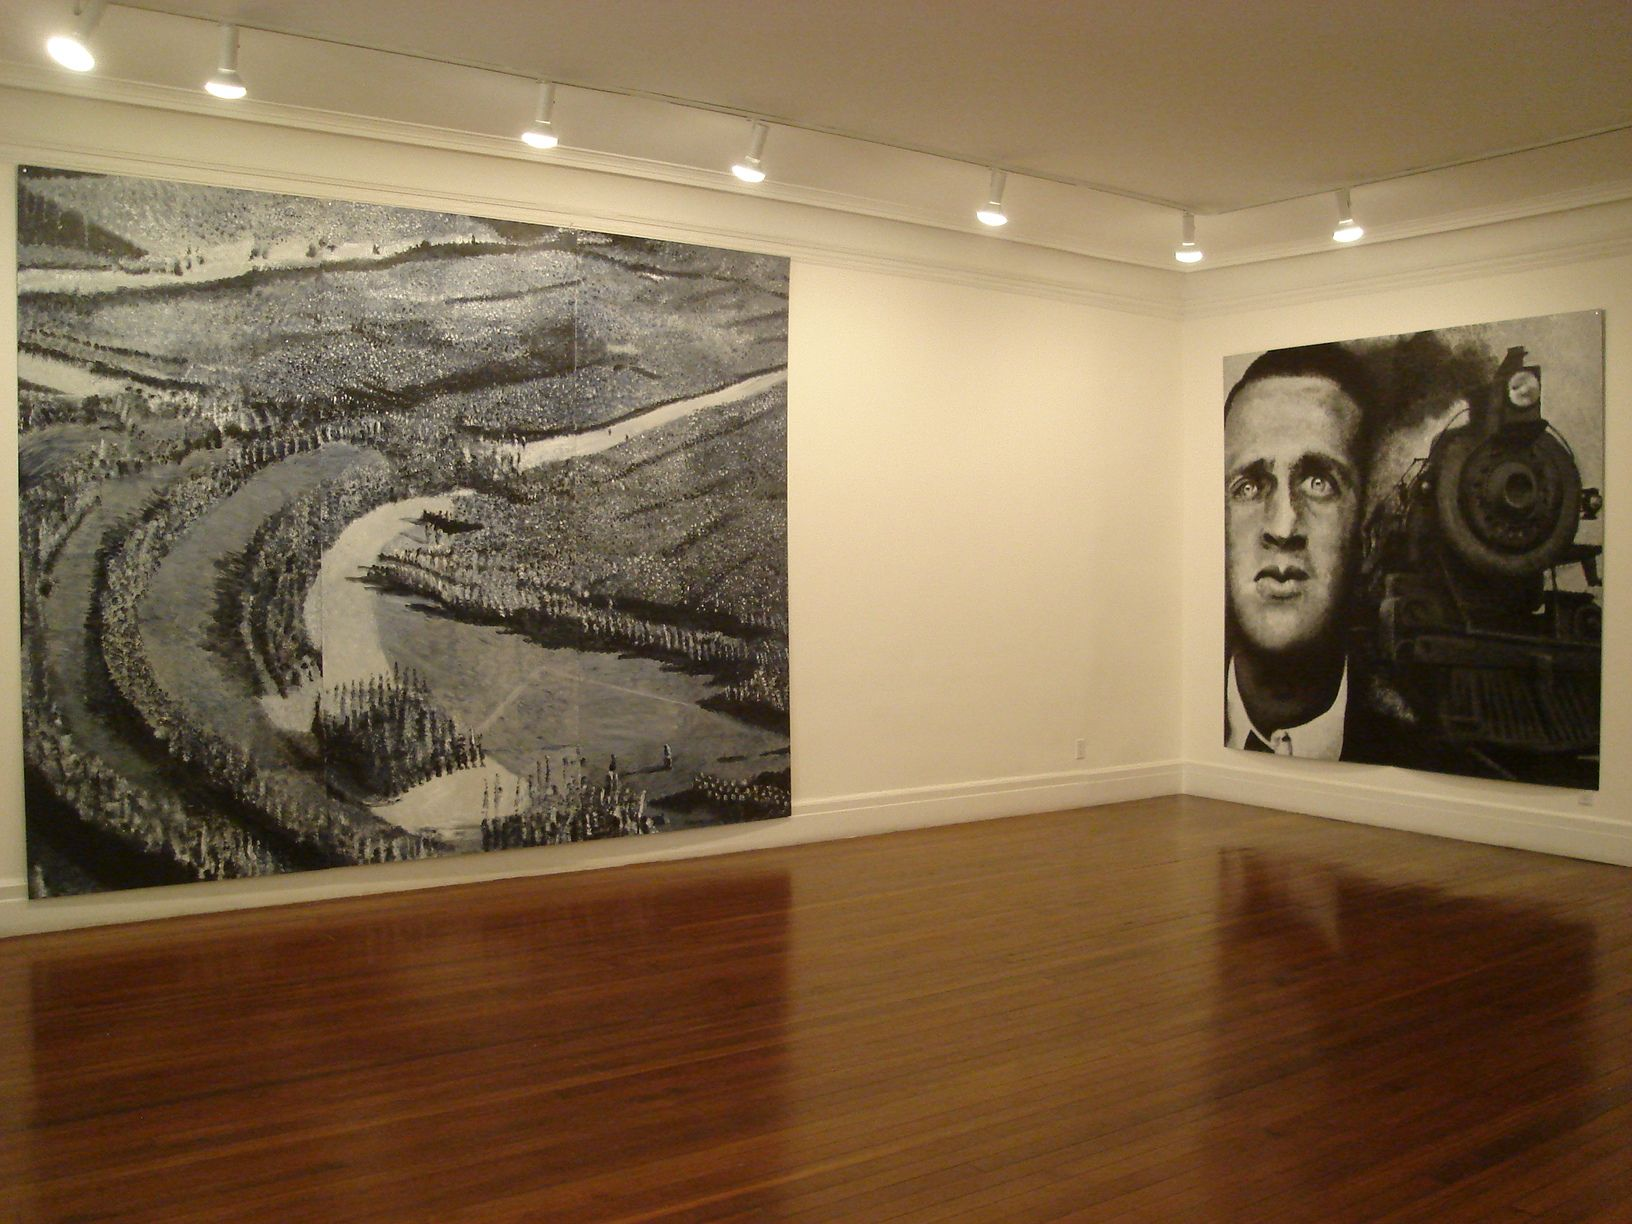 Installation view, Robert Morris: 1934 and Before, 18 EAST 77